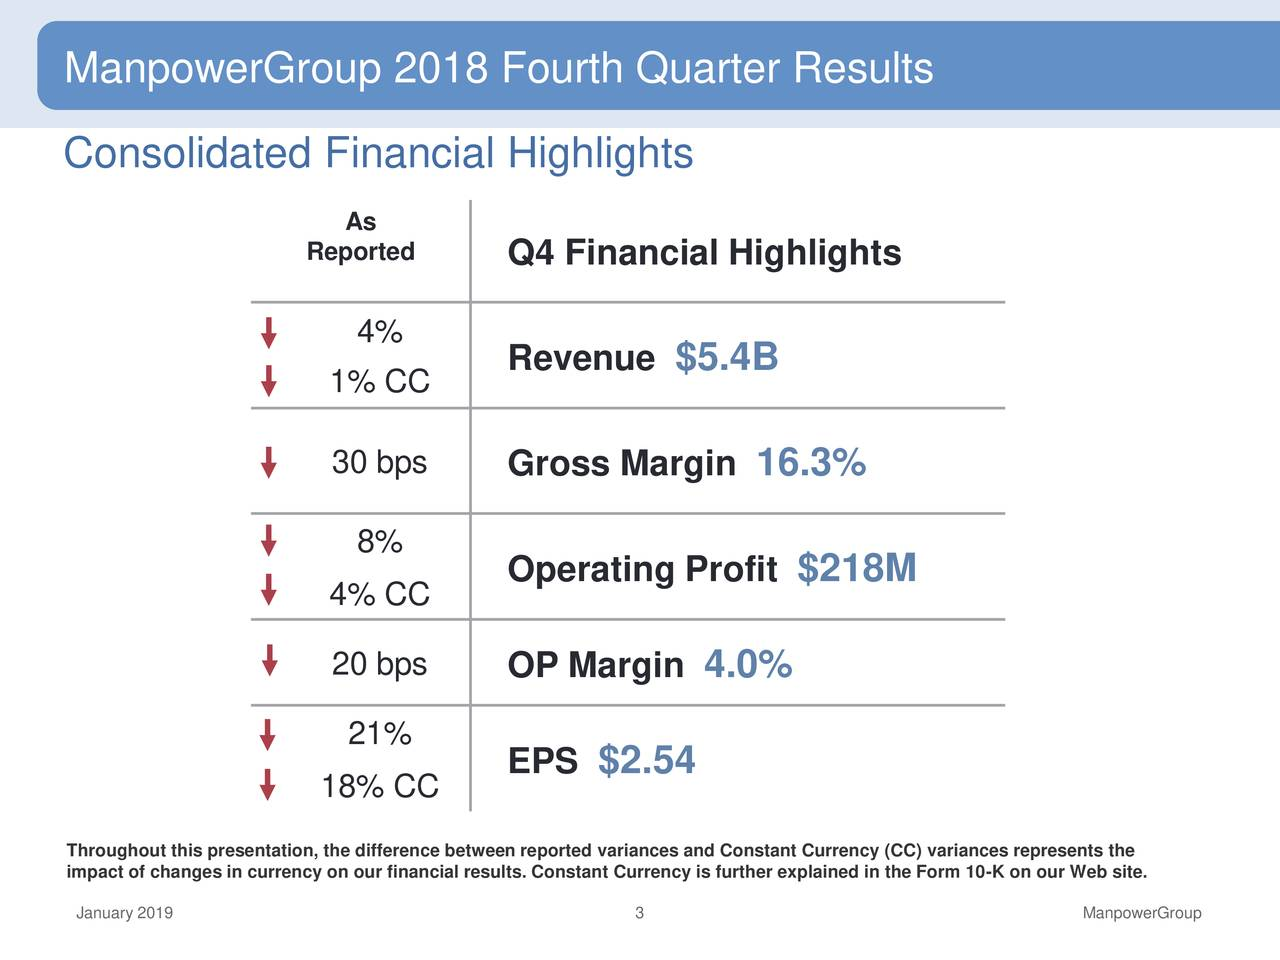 ManpowerGroup 2018 Fourth Quarter Results Consolidated Financial Highlights As Reported Q4 Financial Highlights 4% Revenue $5.4B 1% CC 30 bps Gross Margin 16.3% 8% Operating Profit $218M 4% CC 20 bps OP Margin 4.0% 21% EPS $2.54 18% CC impact of changes in currency on our financial results. Constant Currency is further explained in the Form 10-K on our Web site. January 2019 3 ManpowerGroup